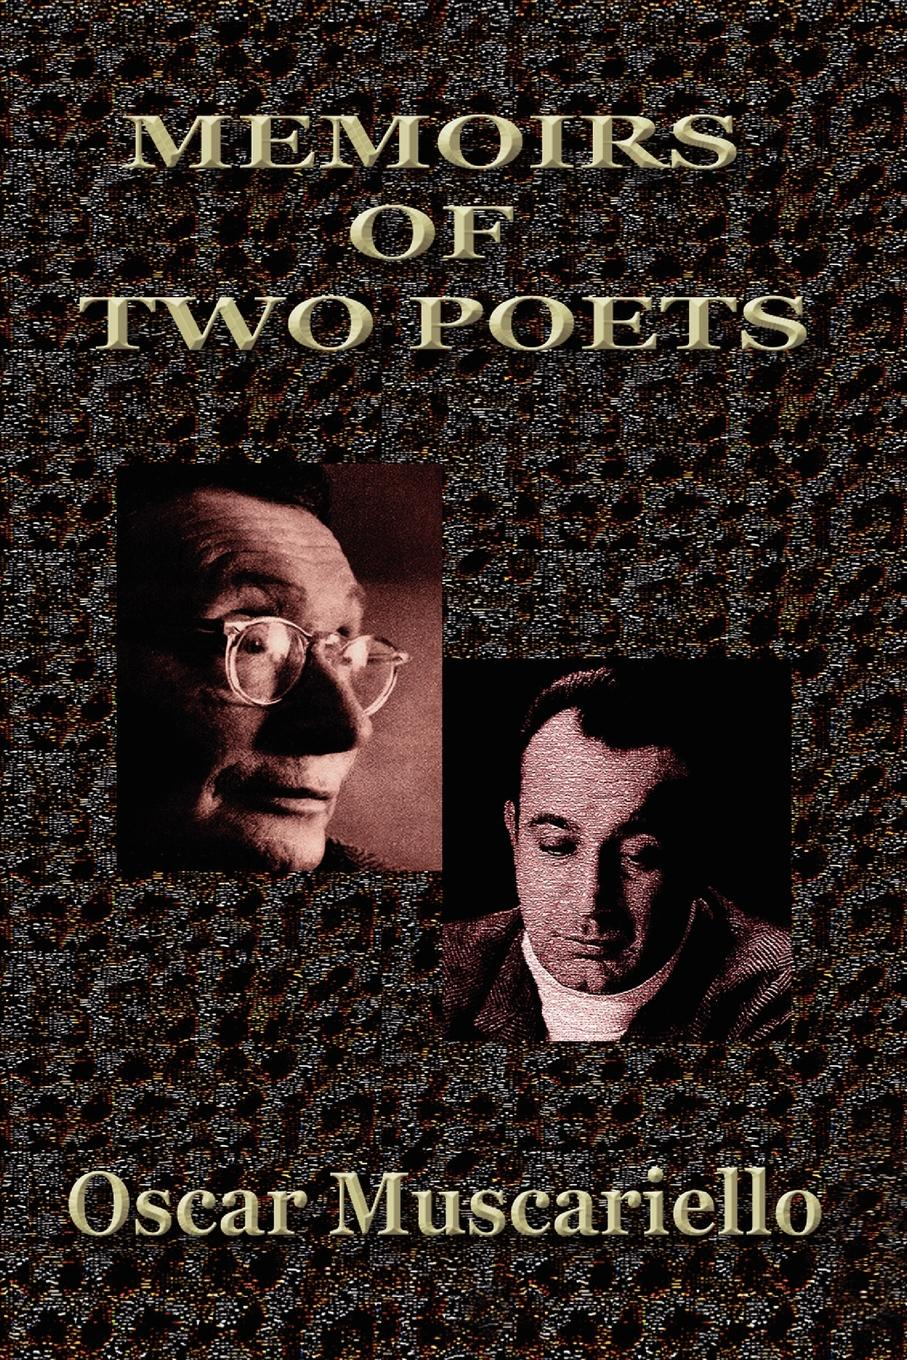 Oscar Muscariello Memoirs of Two Poets two poets at crossroads